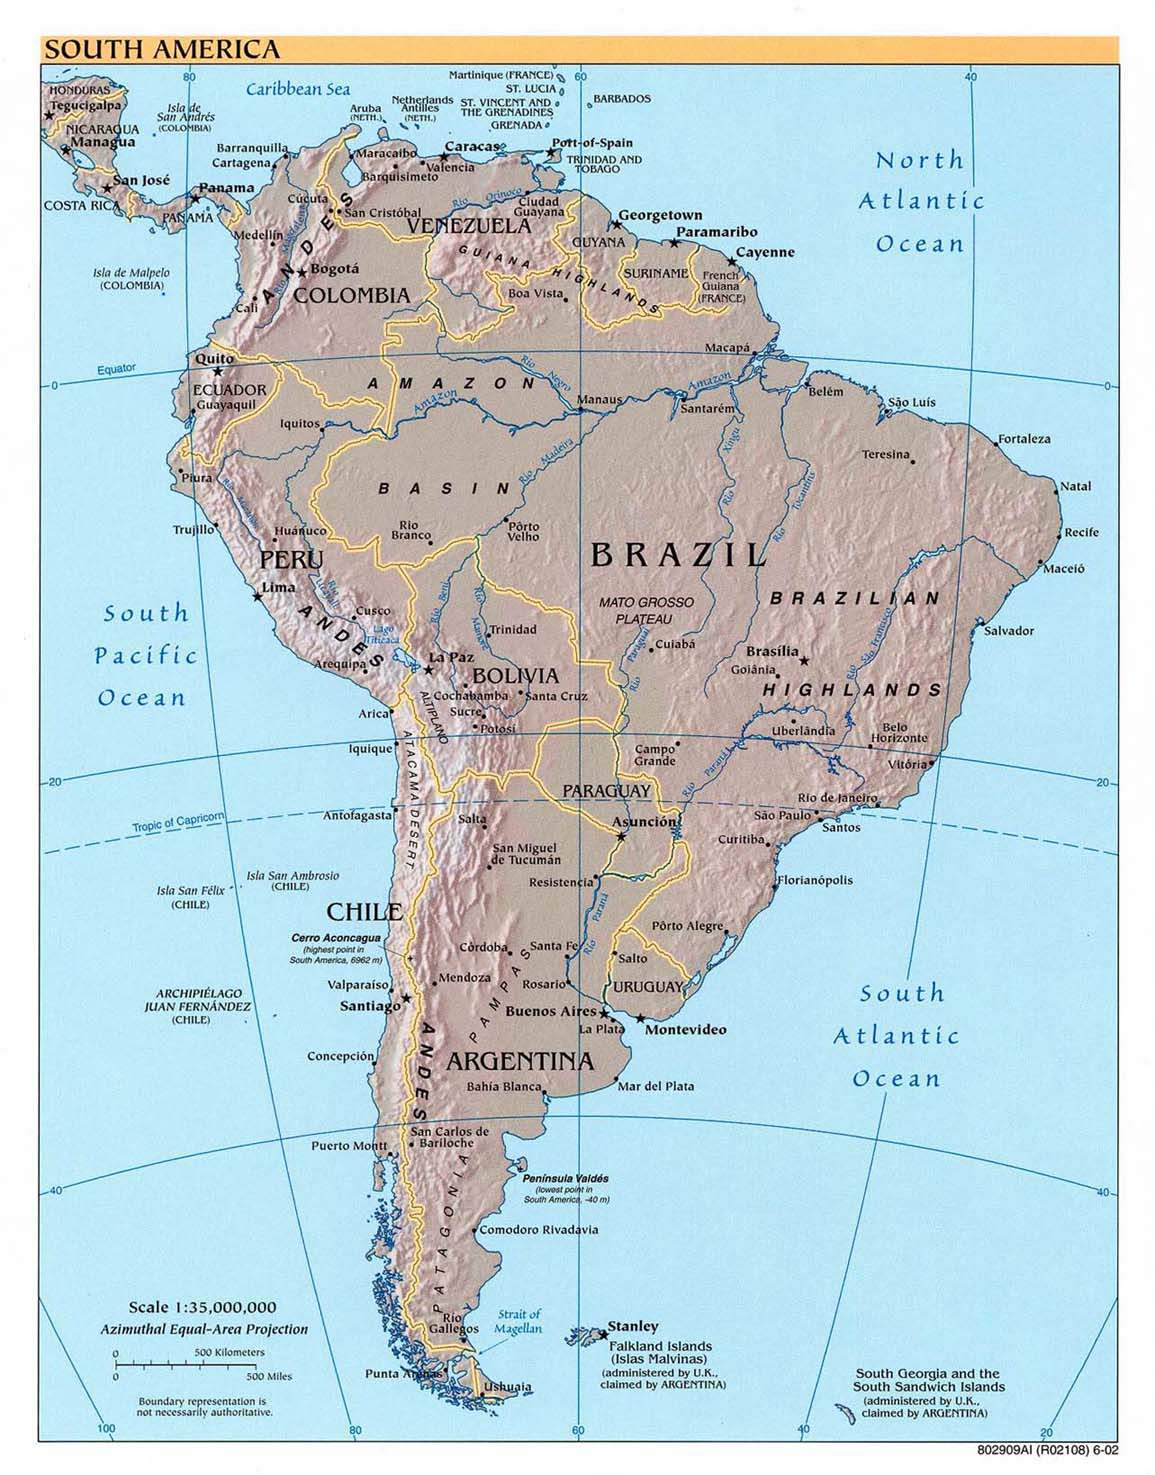 South America physical map 2002